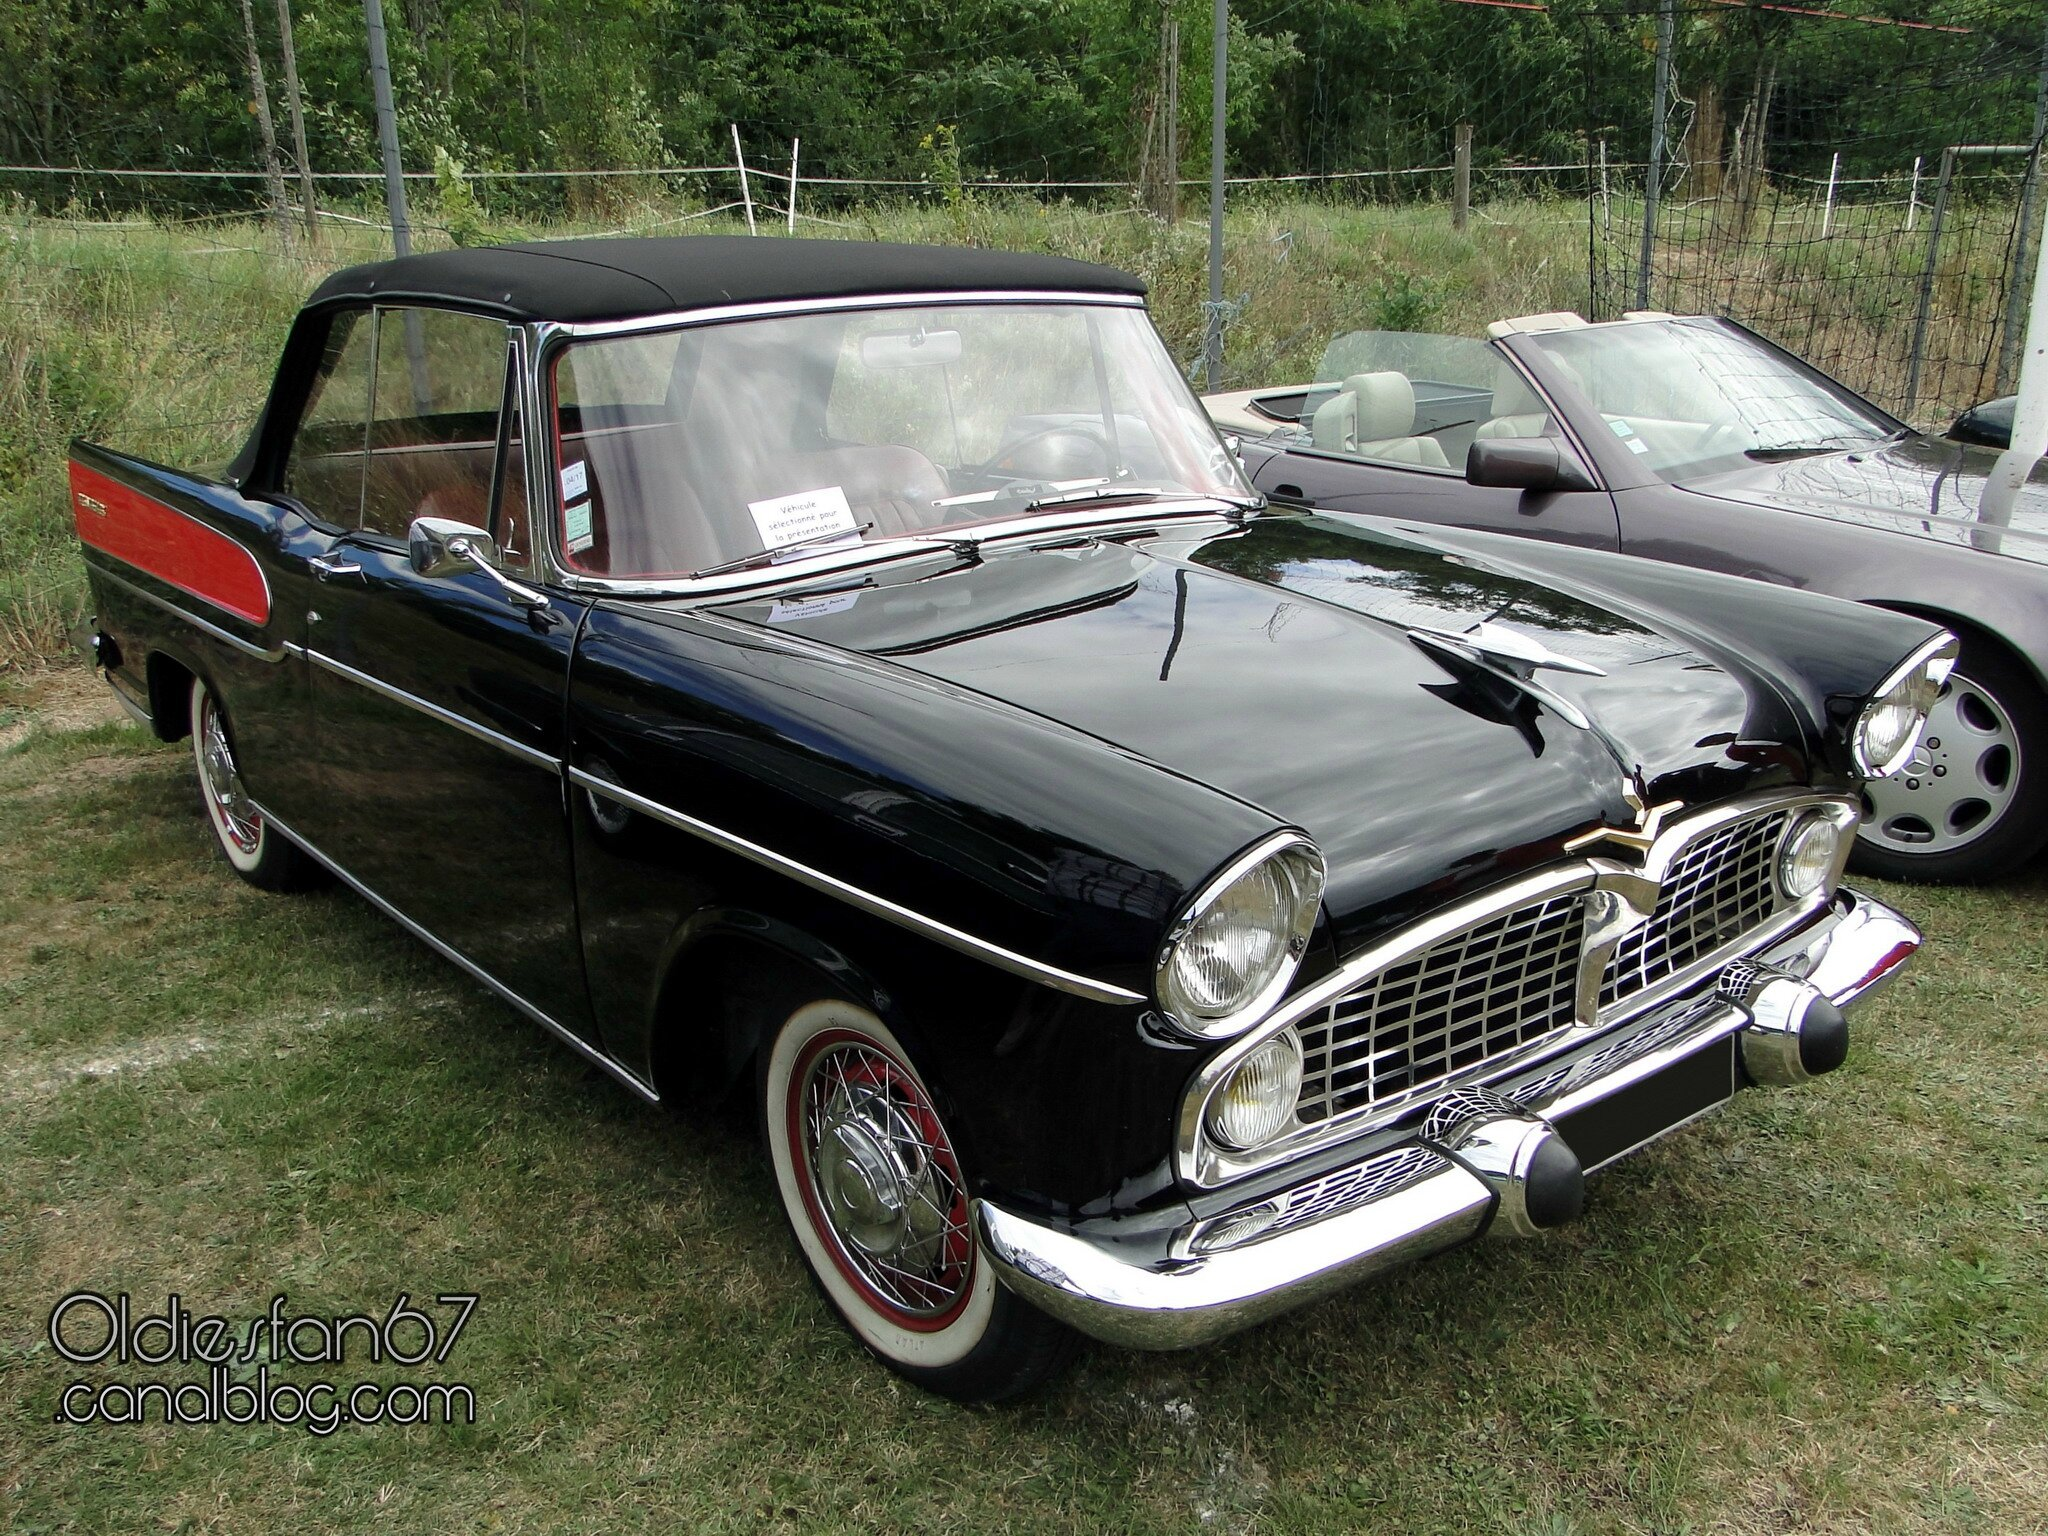 simca vedette chambord cabriolet 1958 oldiesfan67 mon blog auto. Black Bedroom Furniture Sets. Home Design Ideas